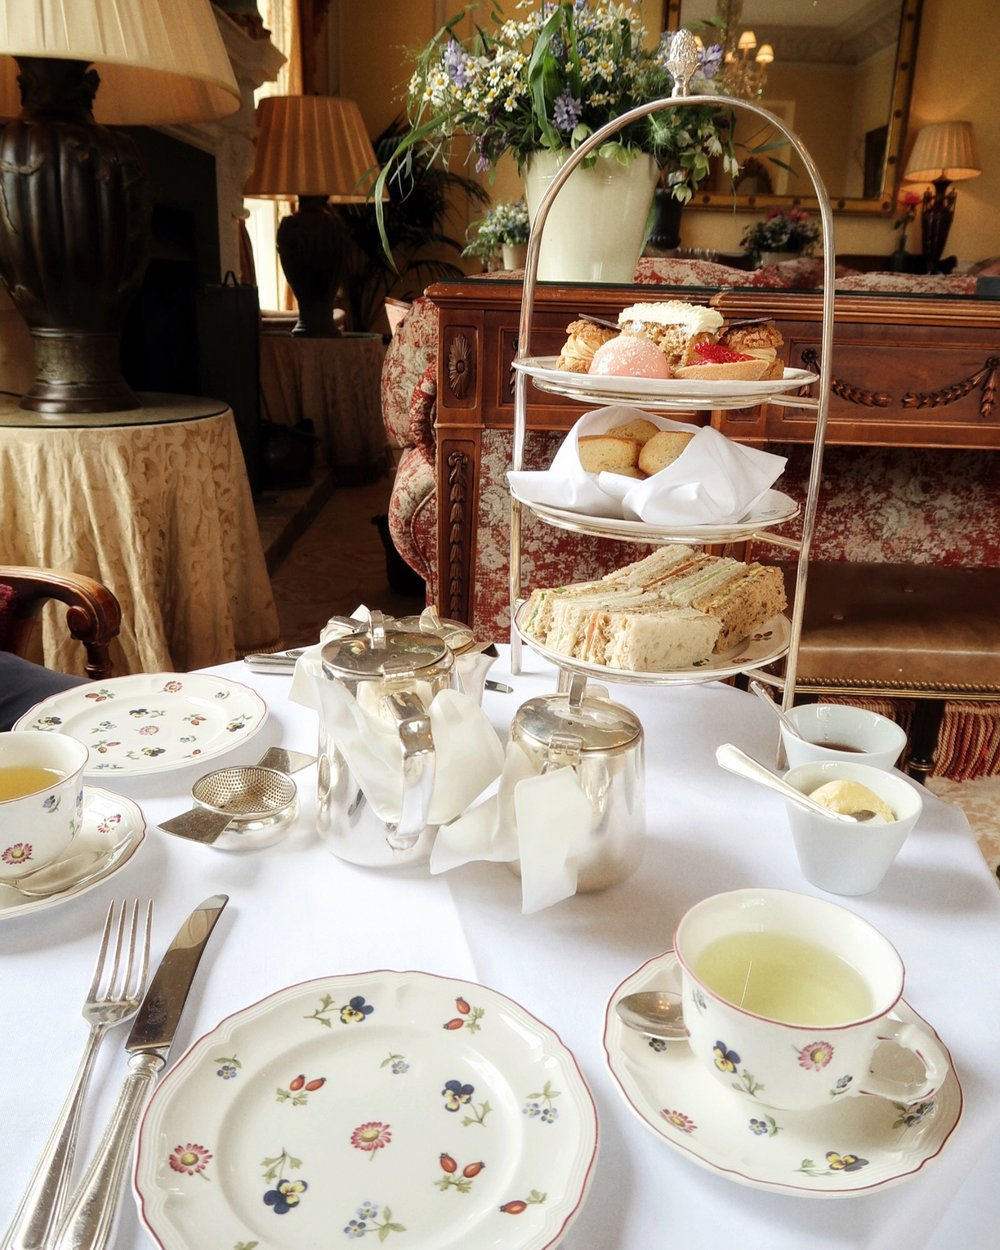 Weekend in the Cotswolds | Afternoon tea at Lucknam Park